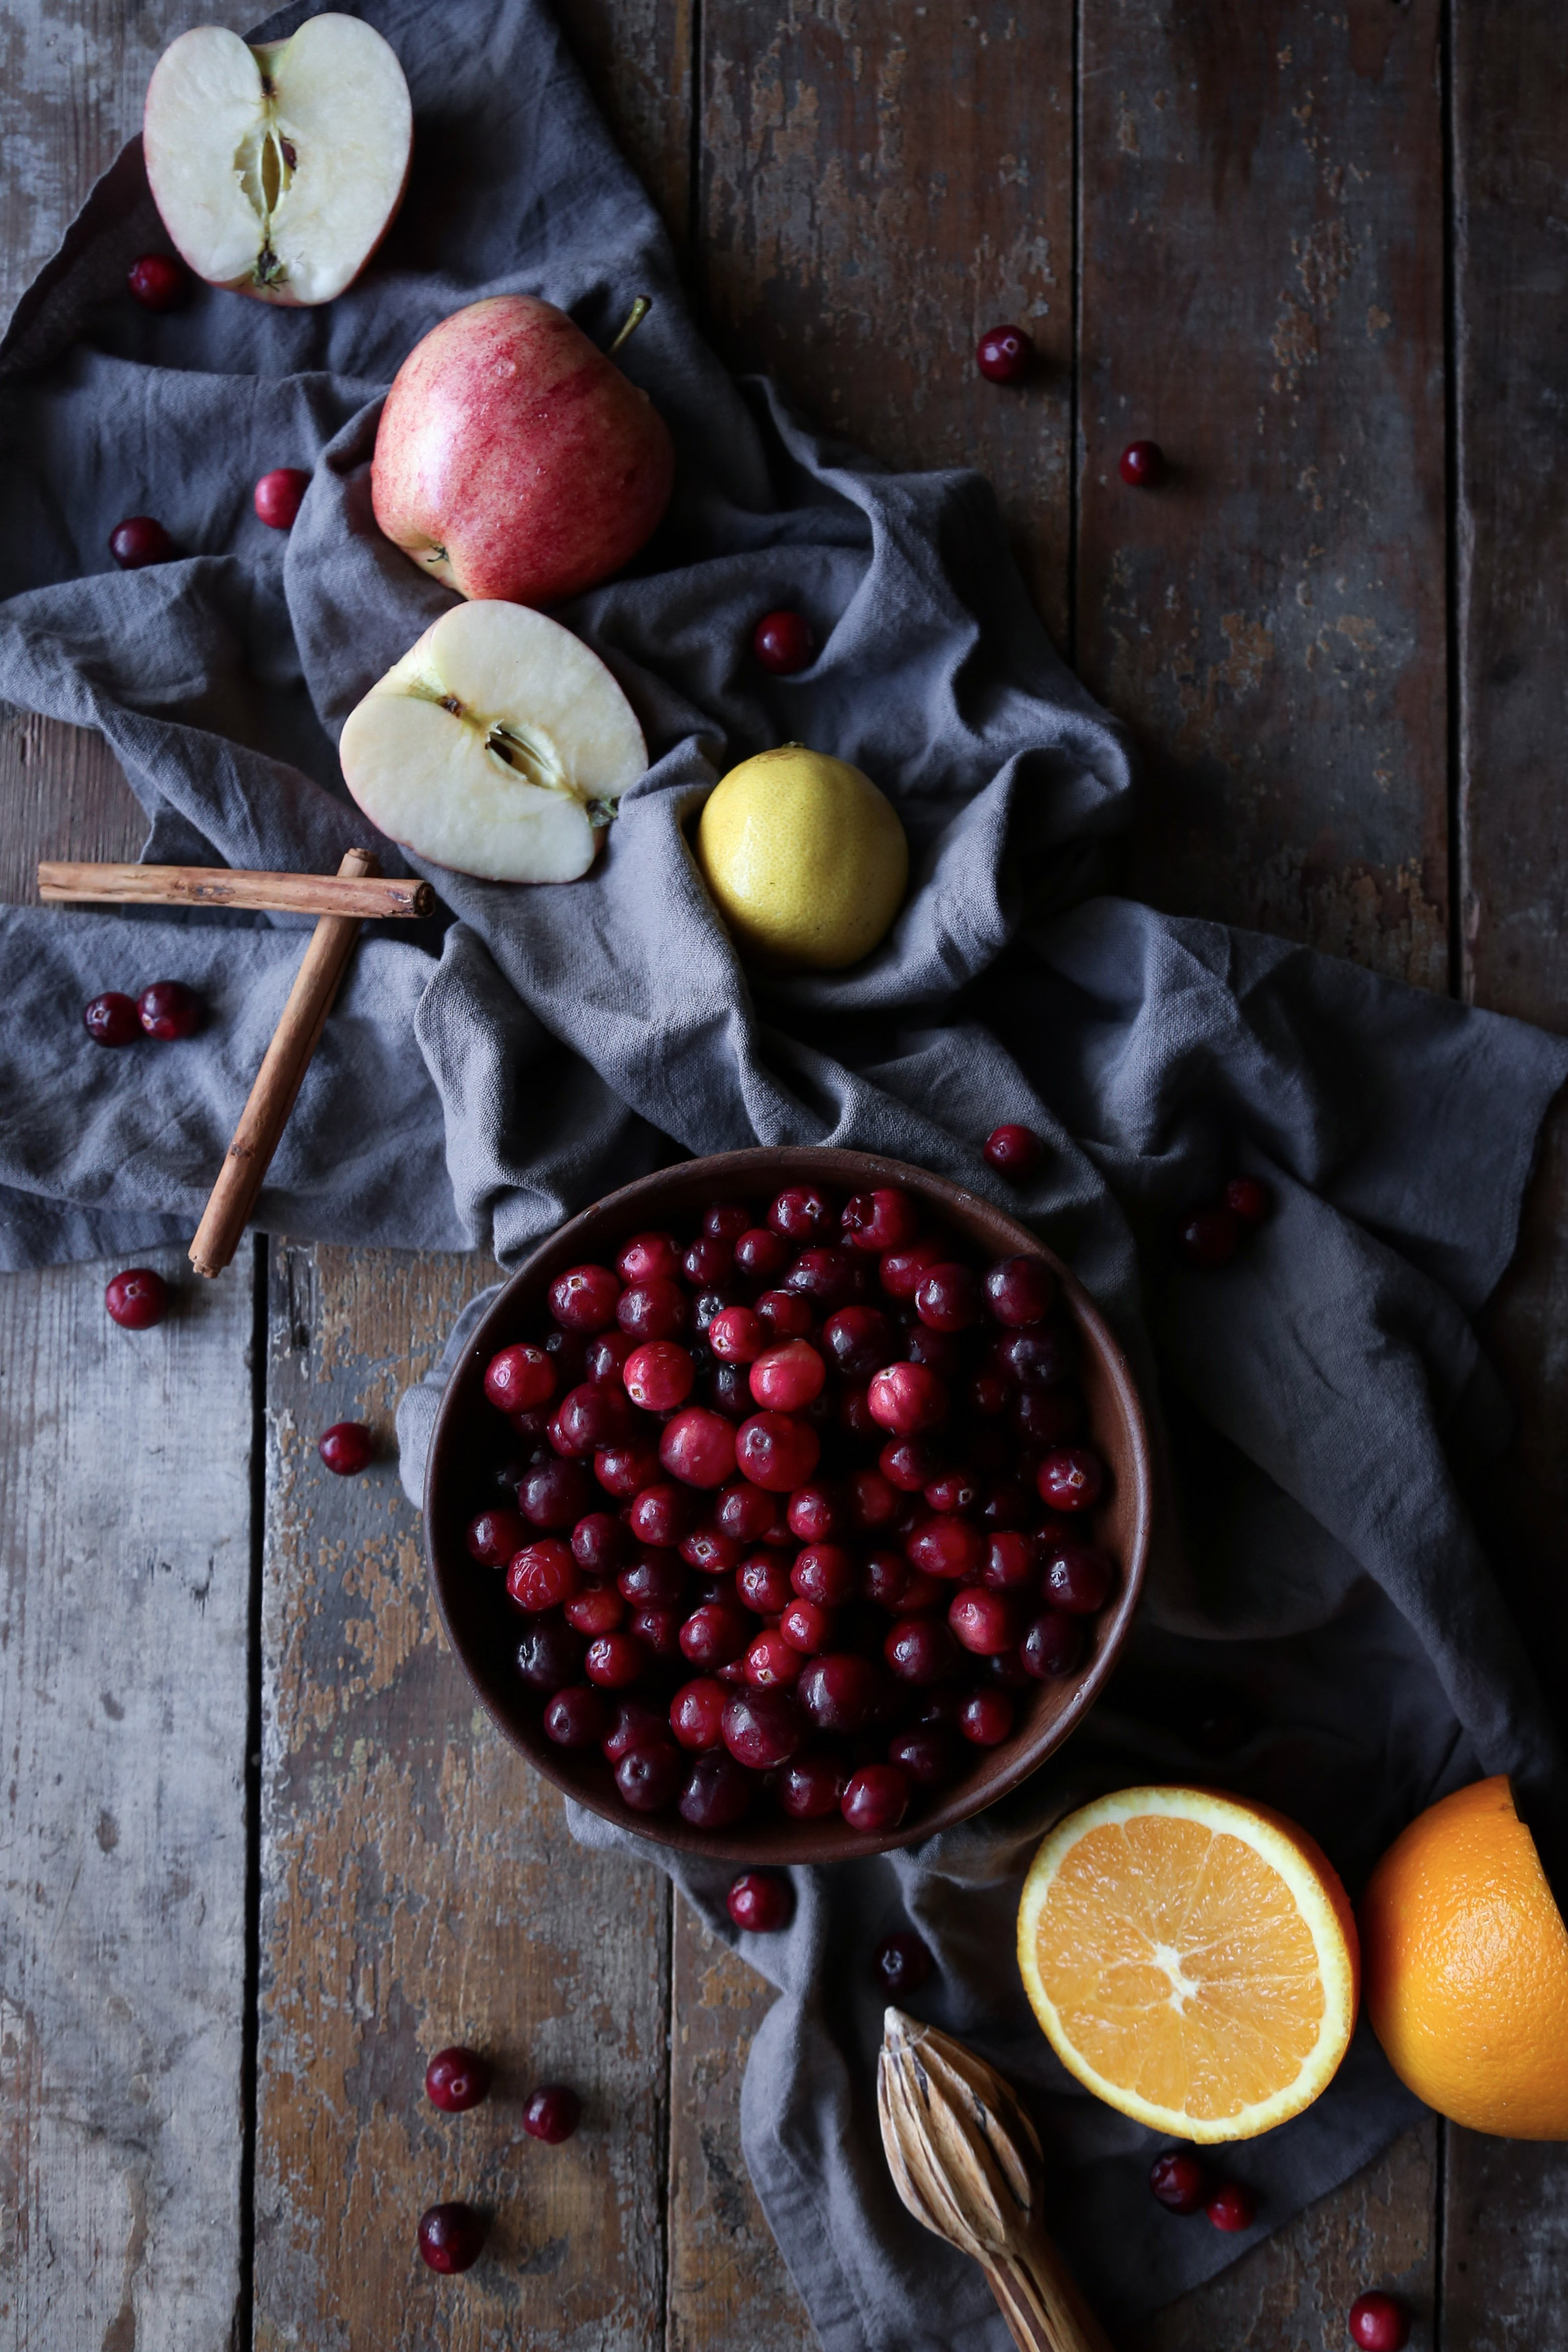 Healthy Cranberry-Apple Compote | Refined Sugar-Free. Vegan/Paleo friendly.